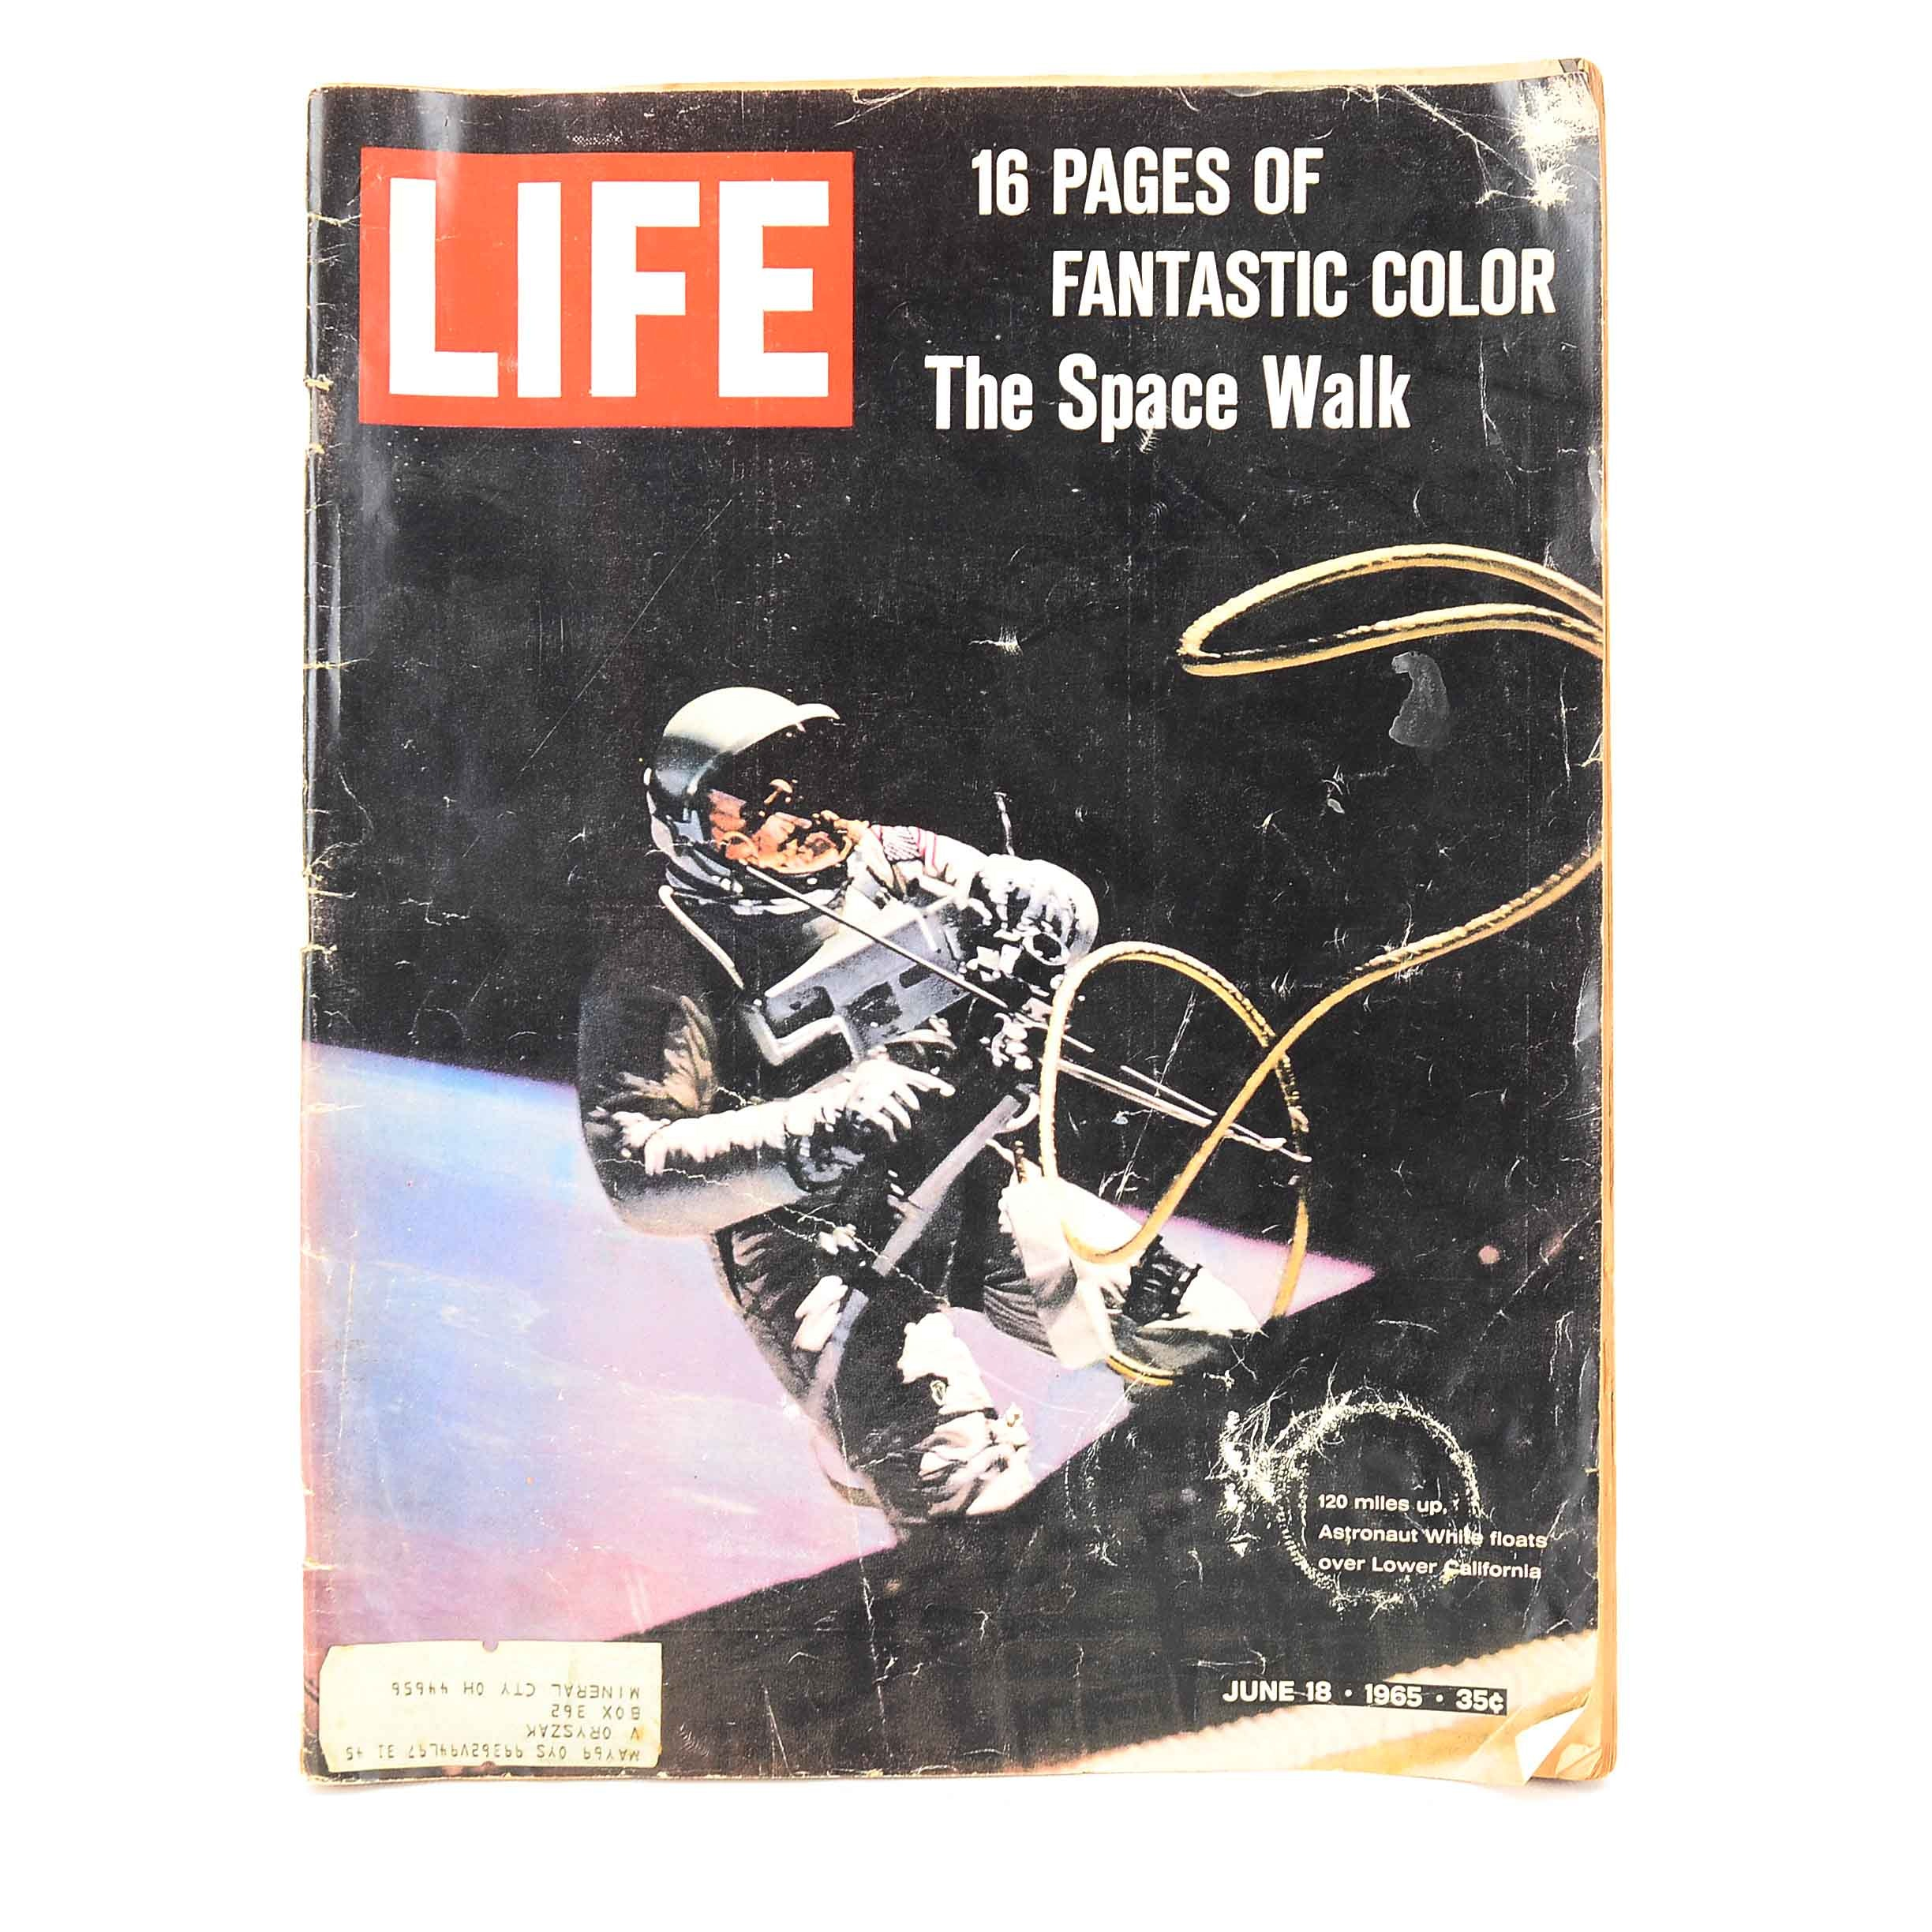 """1965 """"Life"""" Magazine Featuring the Space Walk"""